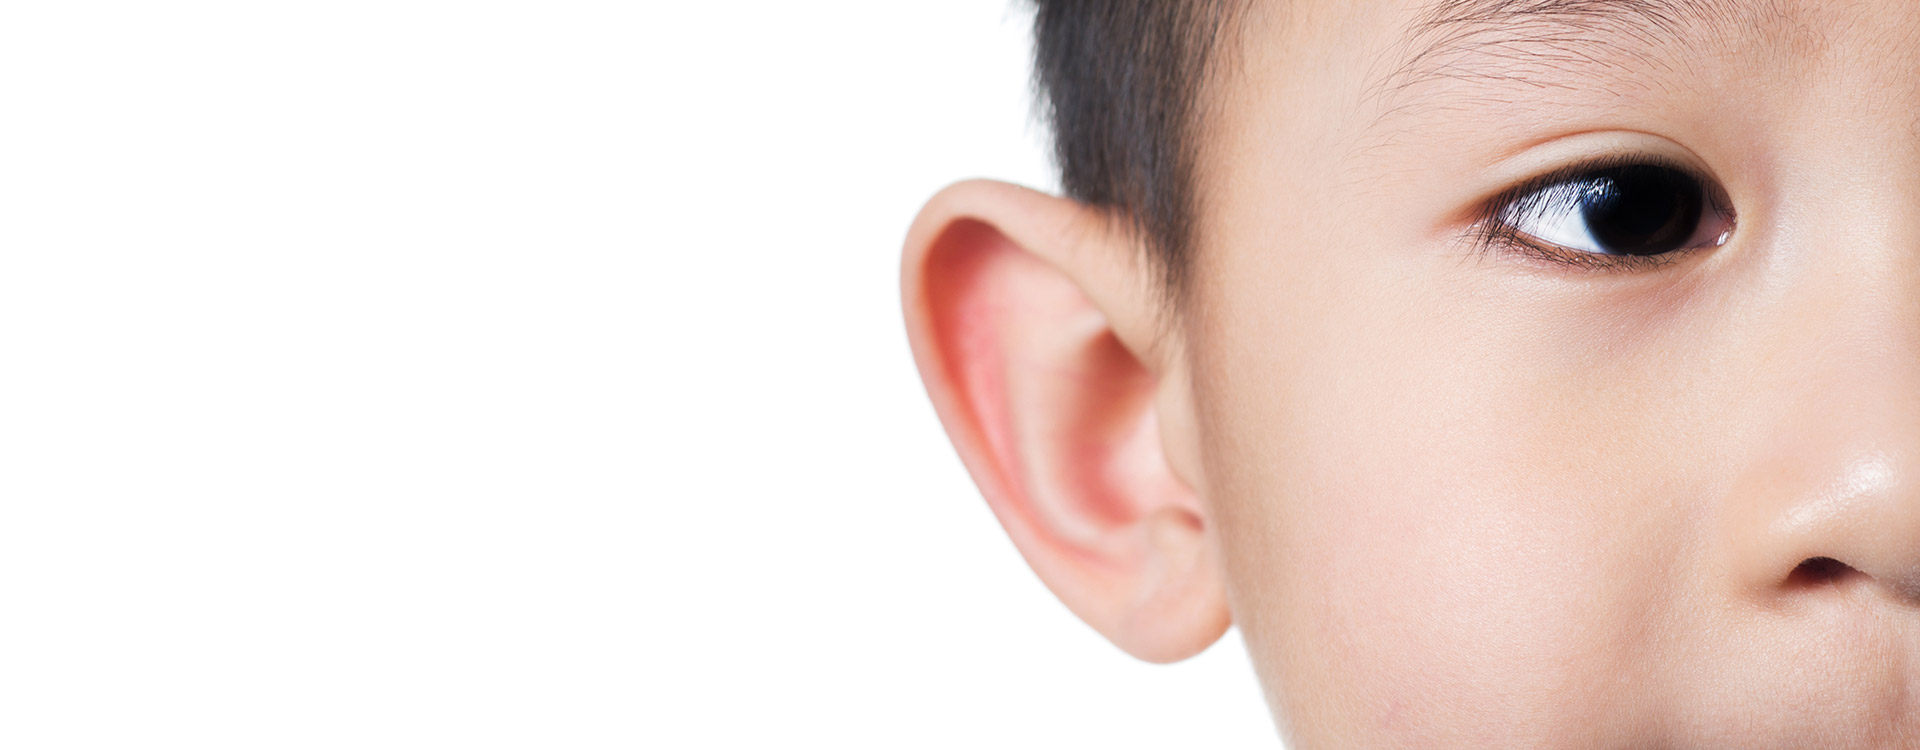 Otoplasty prominent ear surgery Tauranga